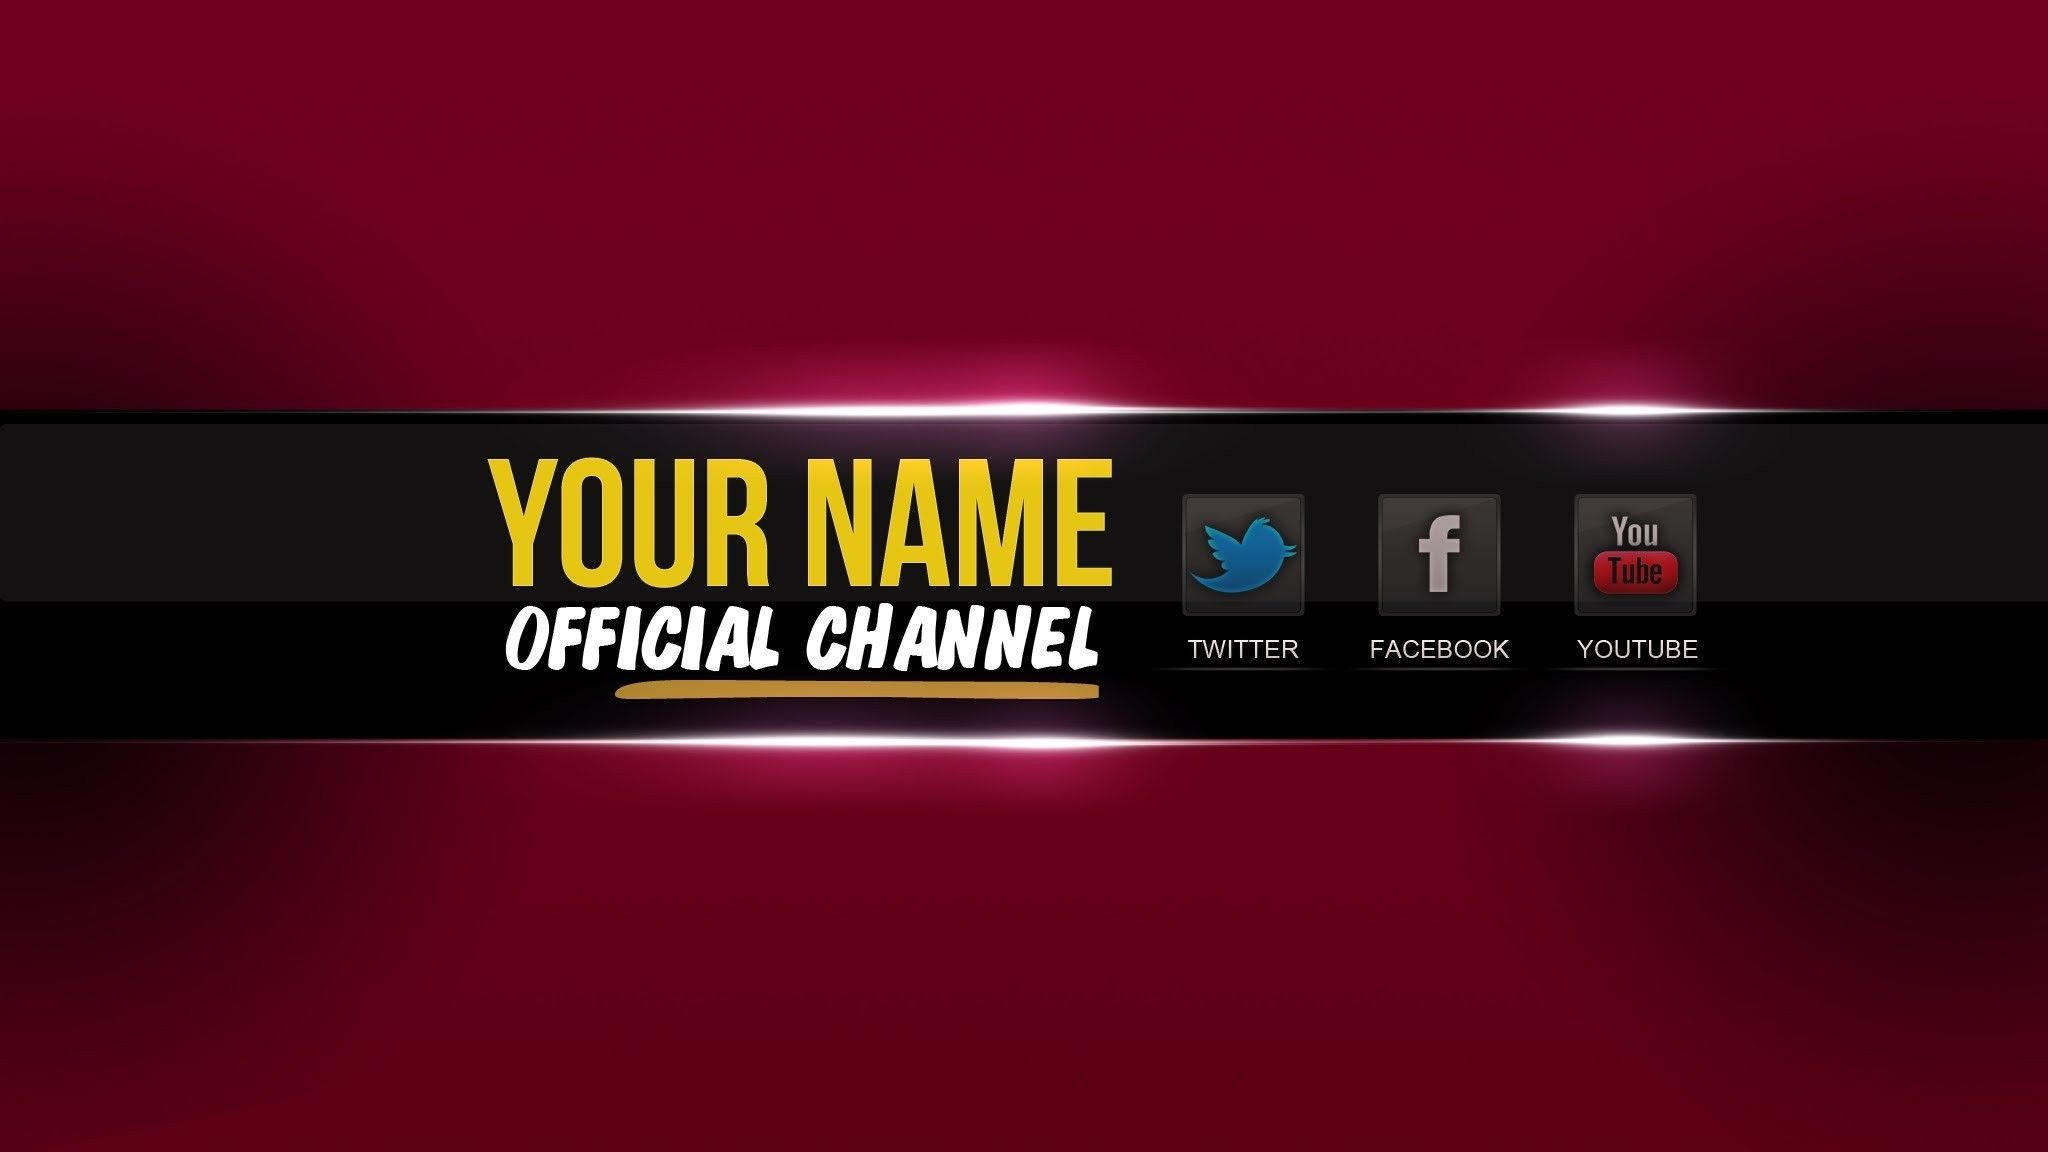 How To Get Free Youtube Banners Channel Art Easy And Cool Youtube With Youtube Channel Art Banner Youtube Banner Template Youtube Channel Art Banner Template